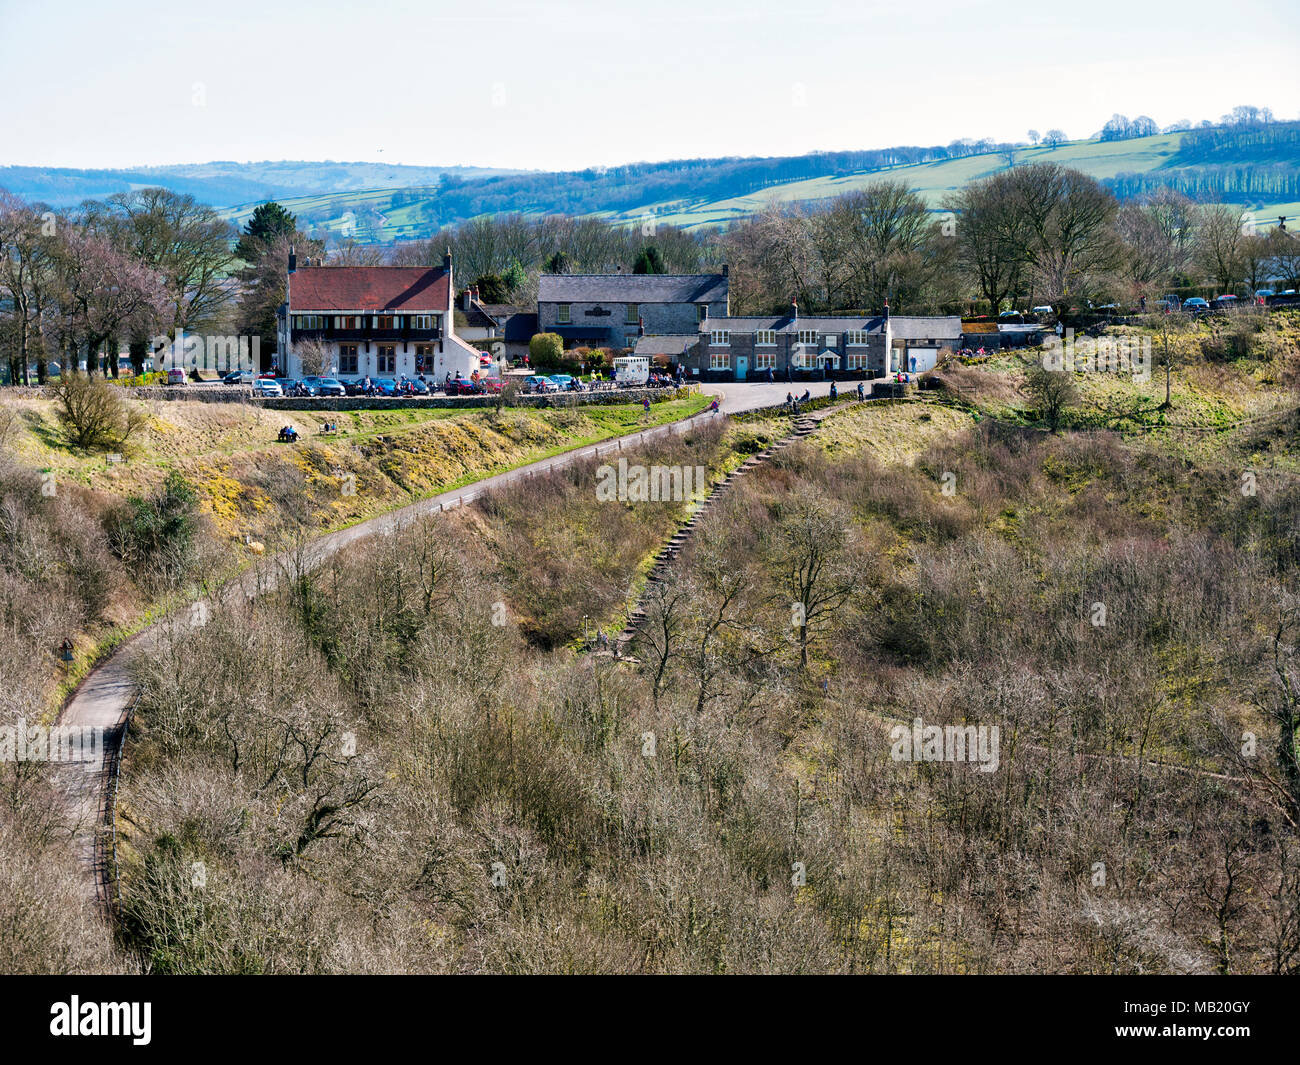 Peak District National Park. 5th Apr, 2018. pub; cafe; UK Weather: visitors, walkers & cyclists enjoying the glorious sunshine on Thursday after the wet Easter Bank Holiday break along the Monsal Trail at Monsal Head & viaduct near Ashford on the Water & Bakewell in the Peak District National Park Credit: Doug Blane/Alamy Live News Stock Photo